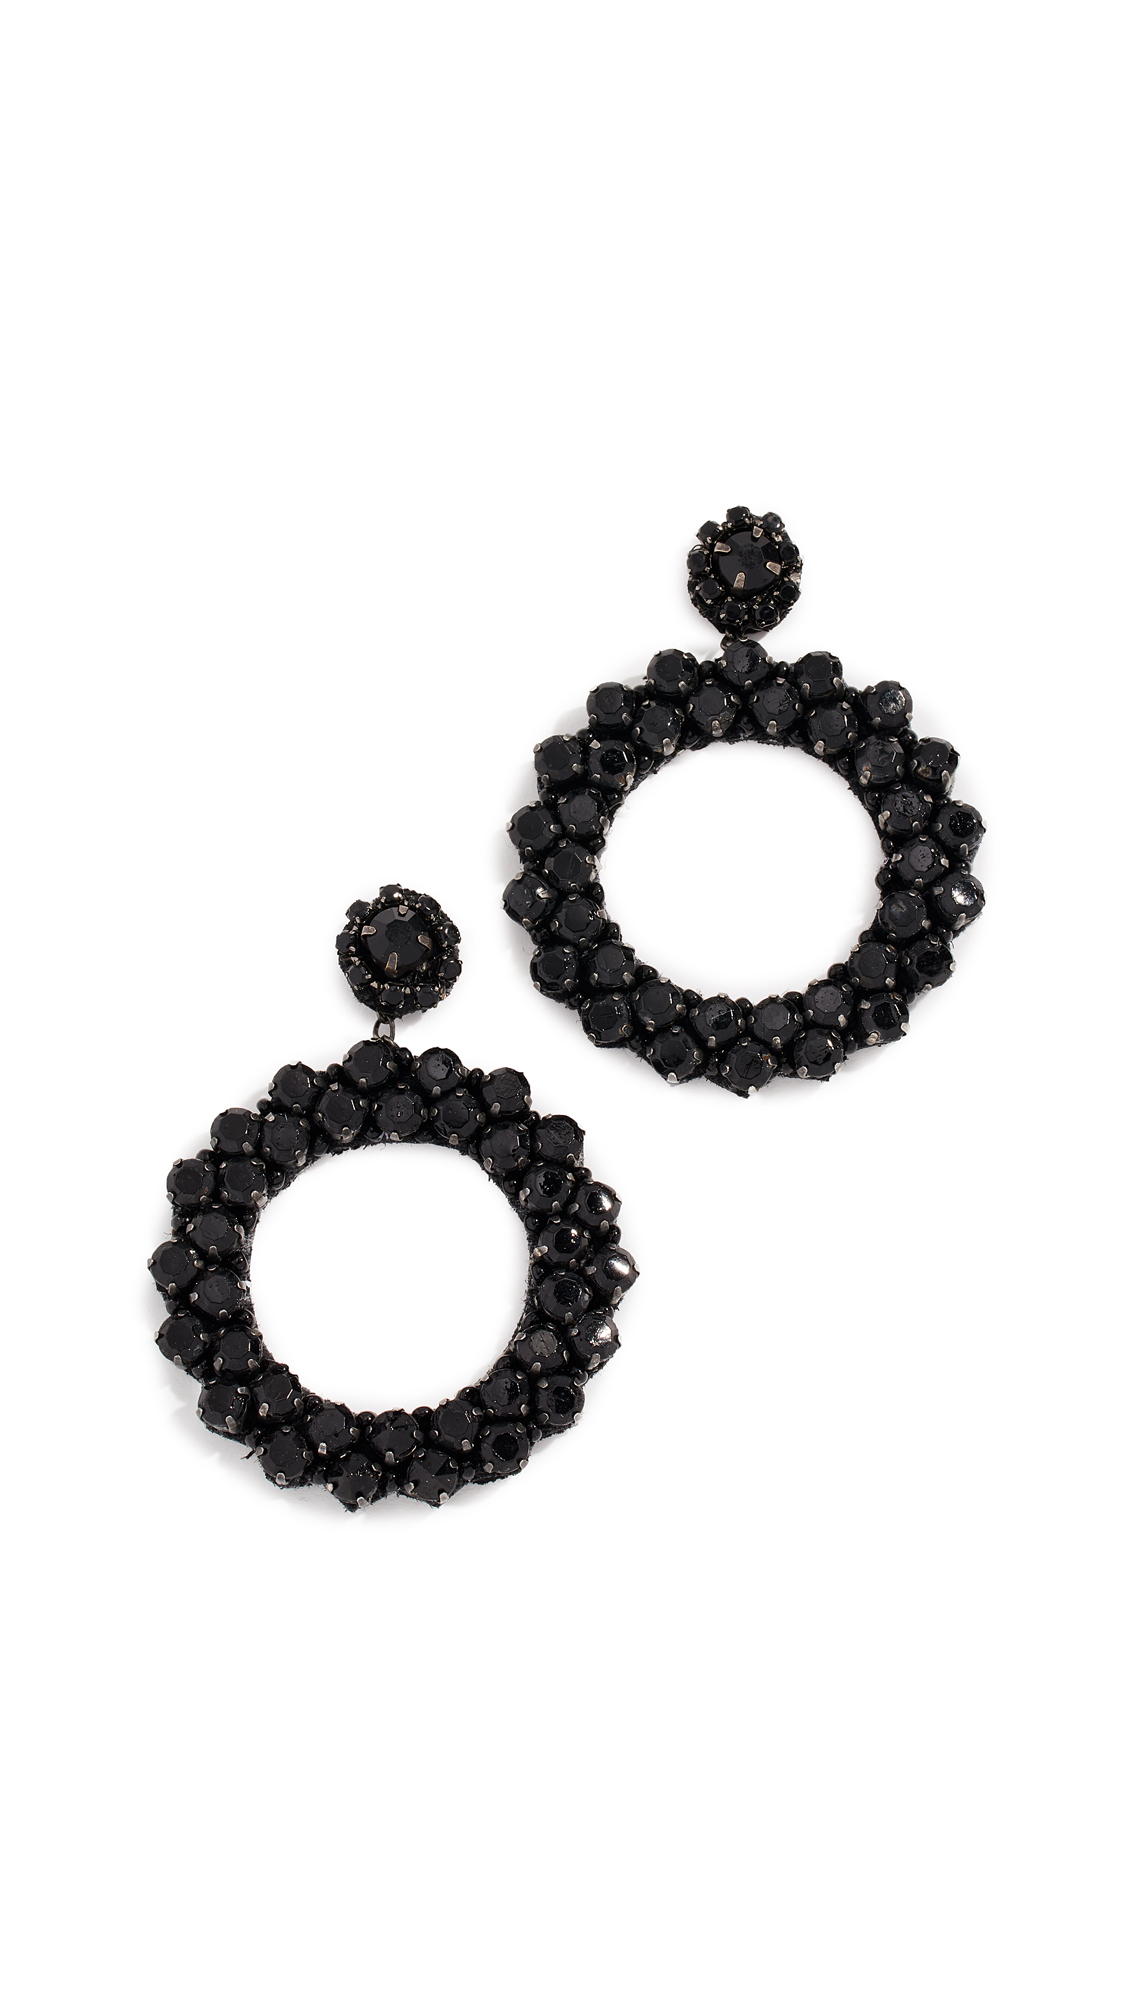 DEEPA GURNANI Amorax Earrings in Black